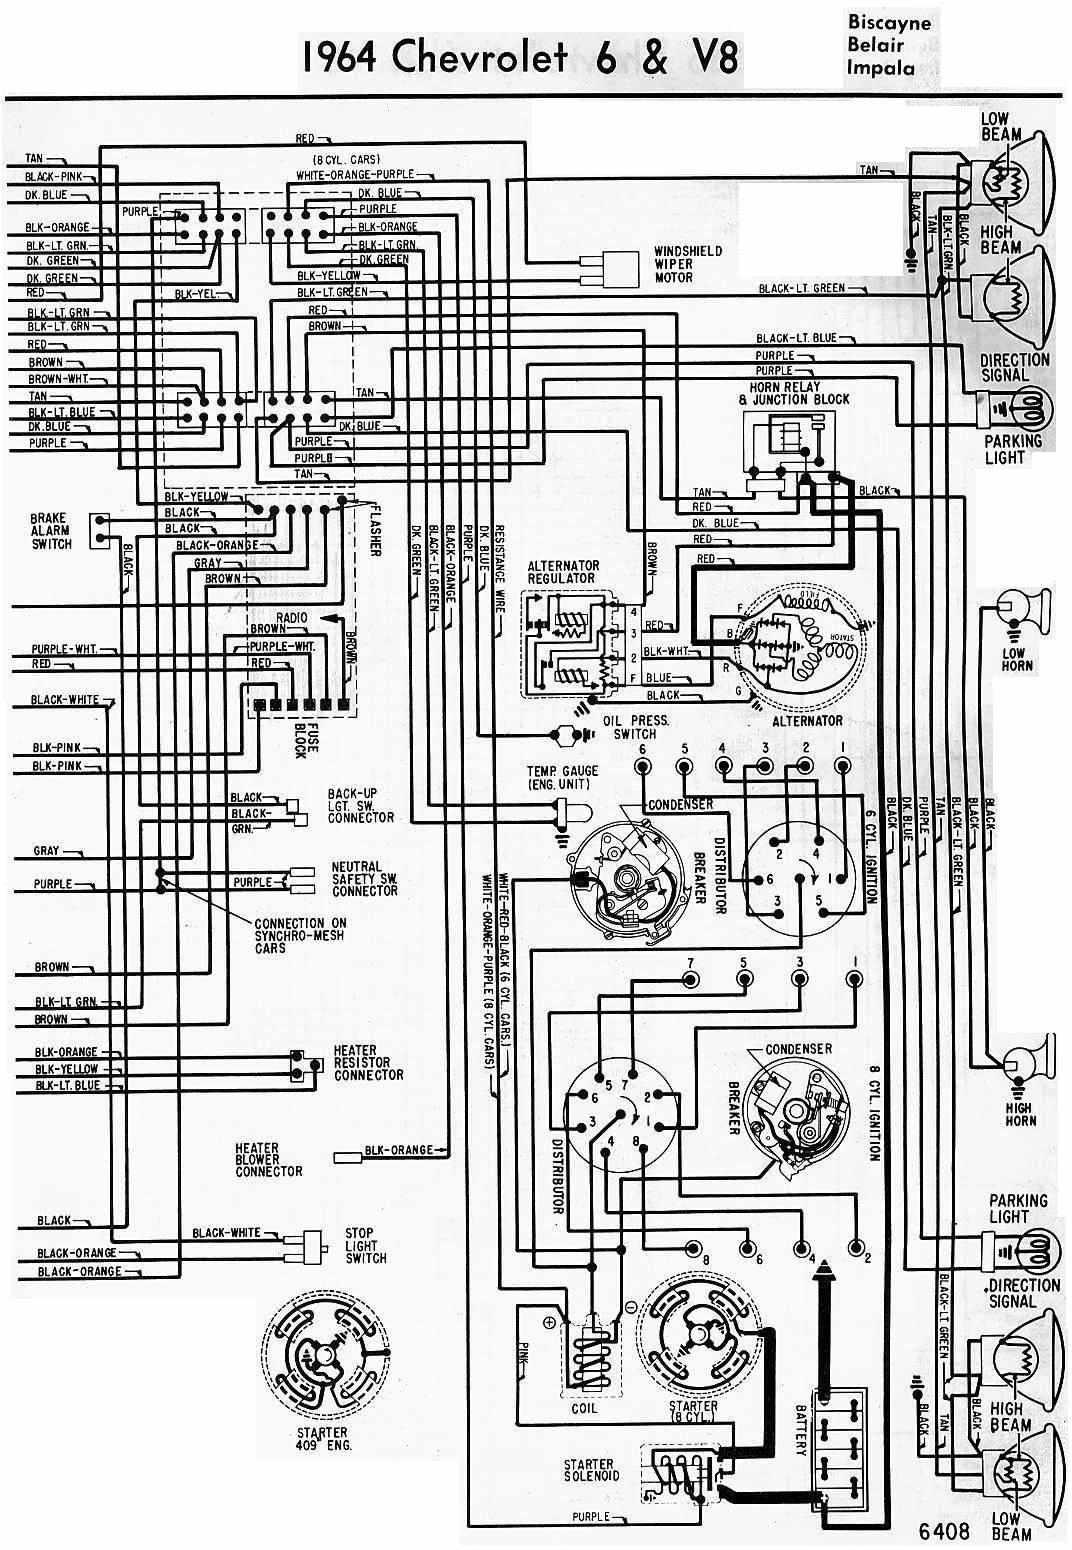 Electrical+Wiring+Diagram+Of+1964+Chevrolet+6+And+V8 1964 bel air wire diagram colors incorrect chevytalk free 64 impala tail light wiring diagram at webbmarketing.co